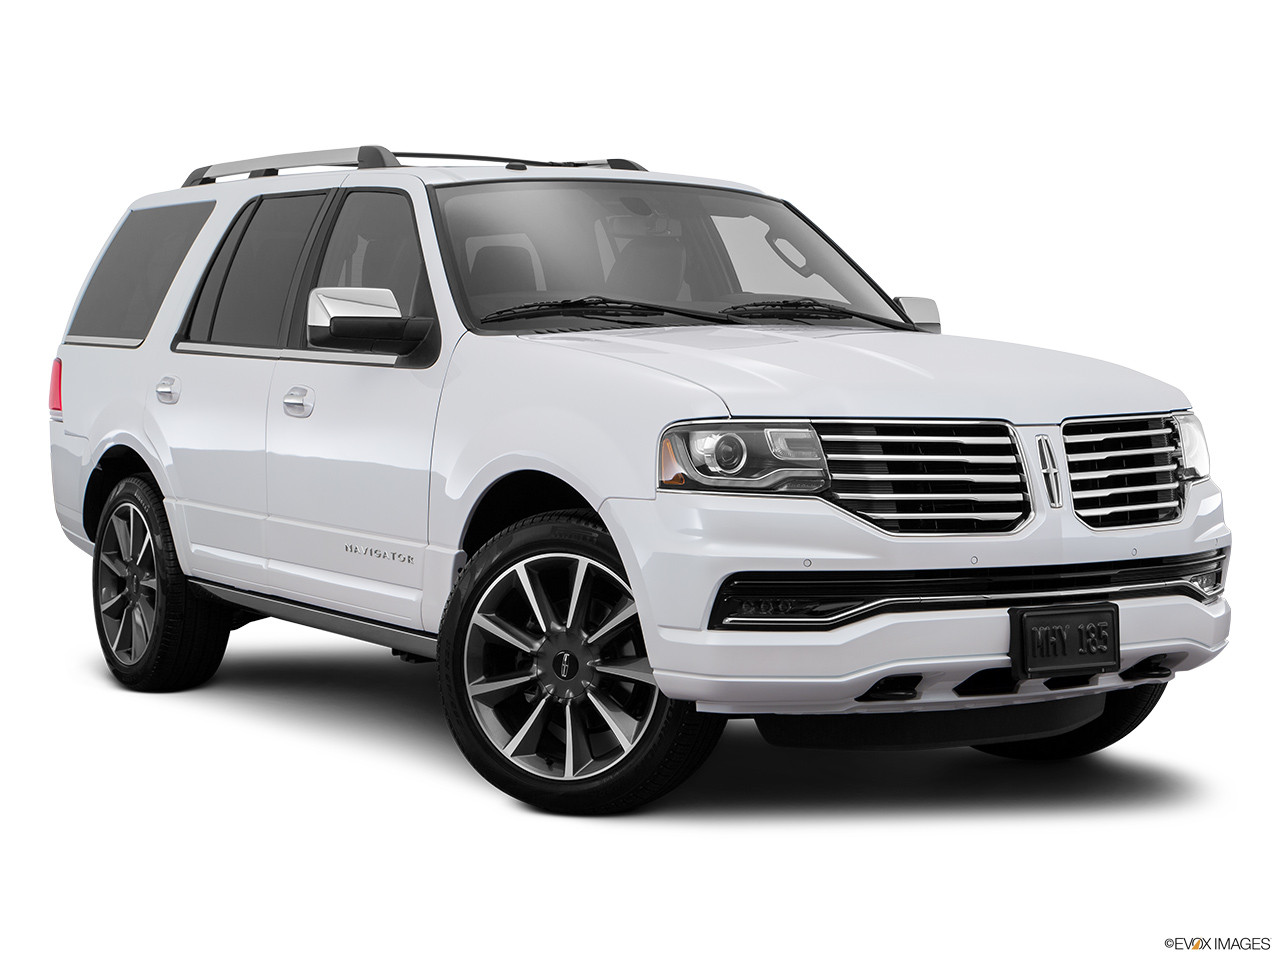 2016 Lincoln Navigator Reserve Front passenger 3/4 w/ wheels turned.